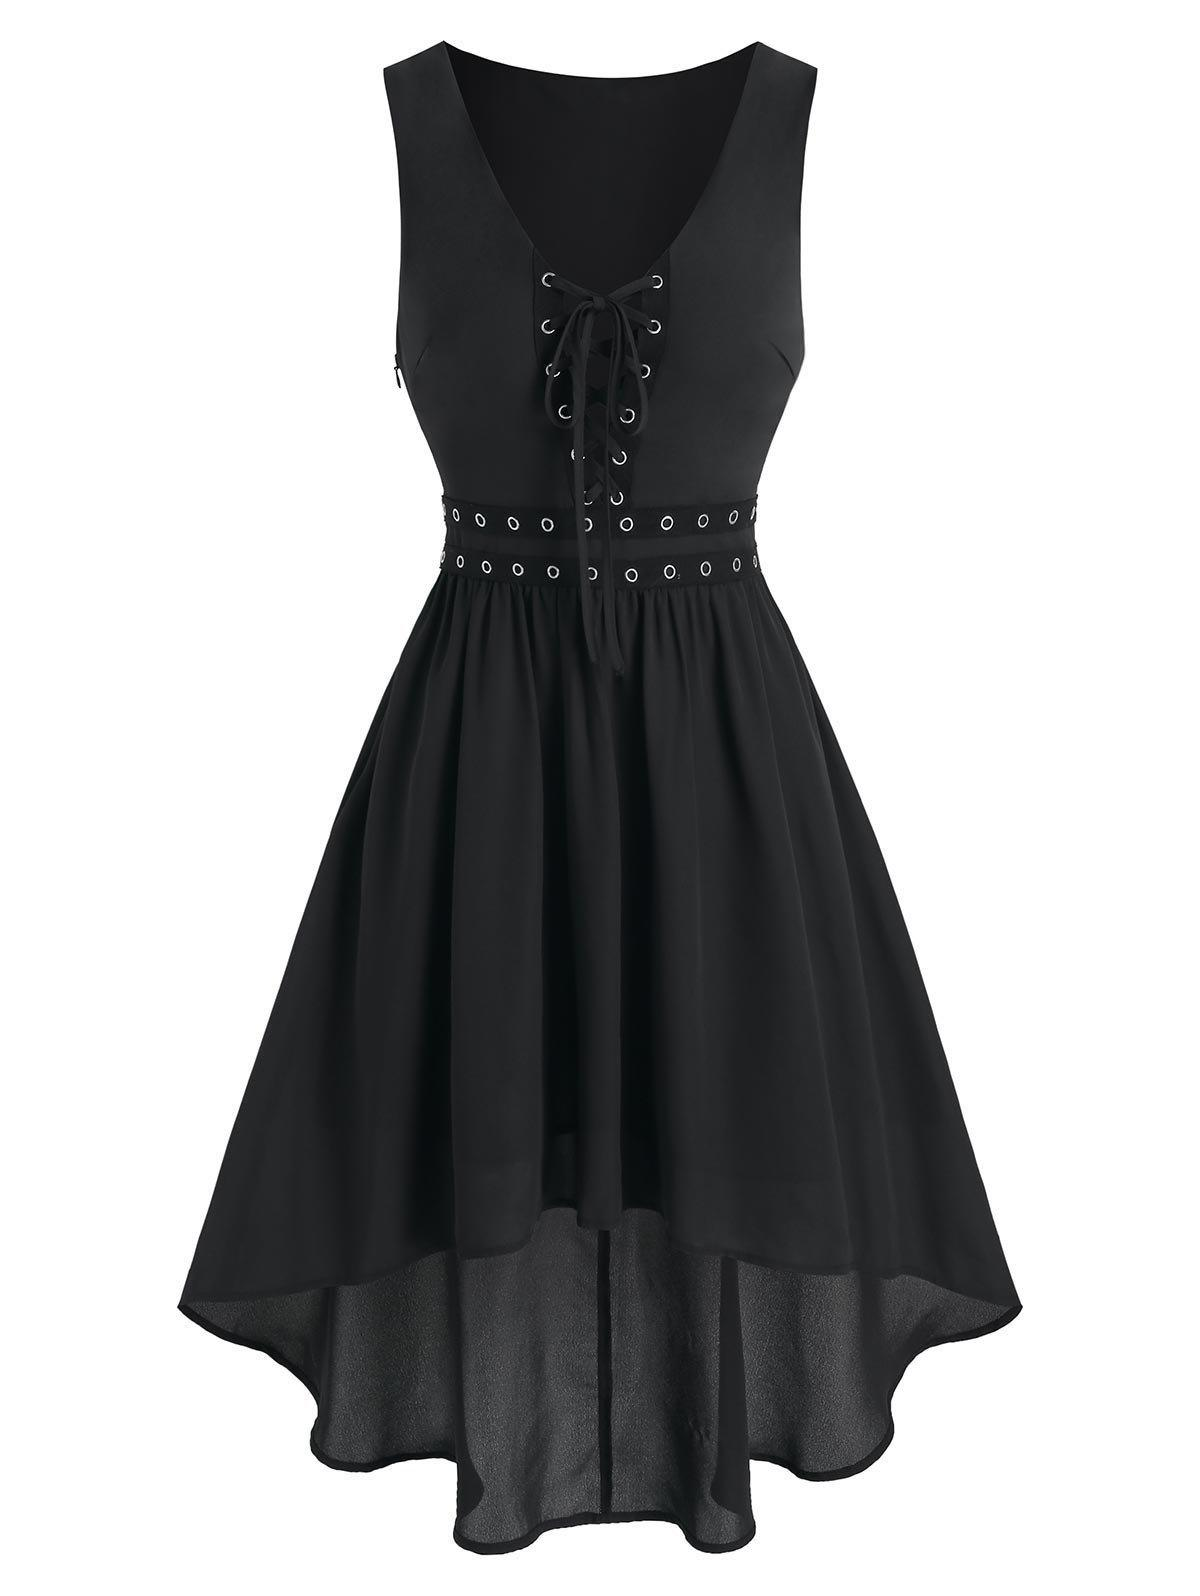 Grommet Lace Up High Low A Line Dress - BLACK 2XL